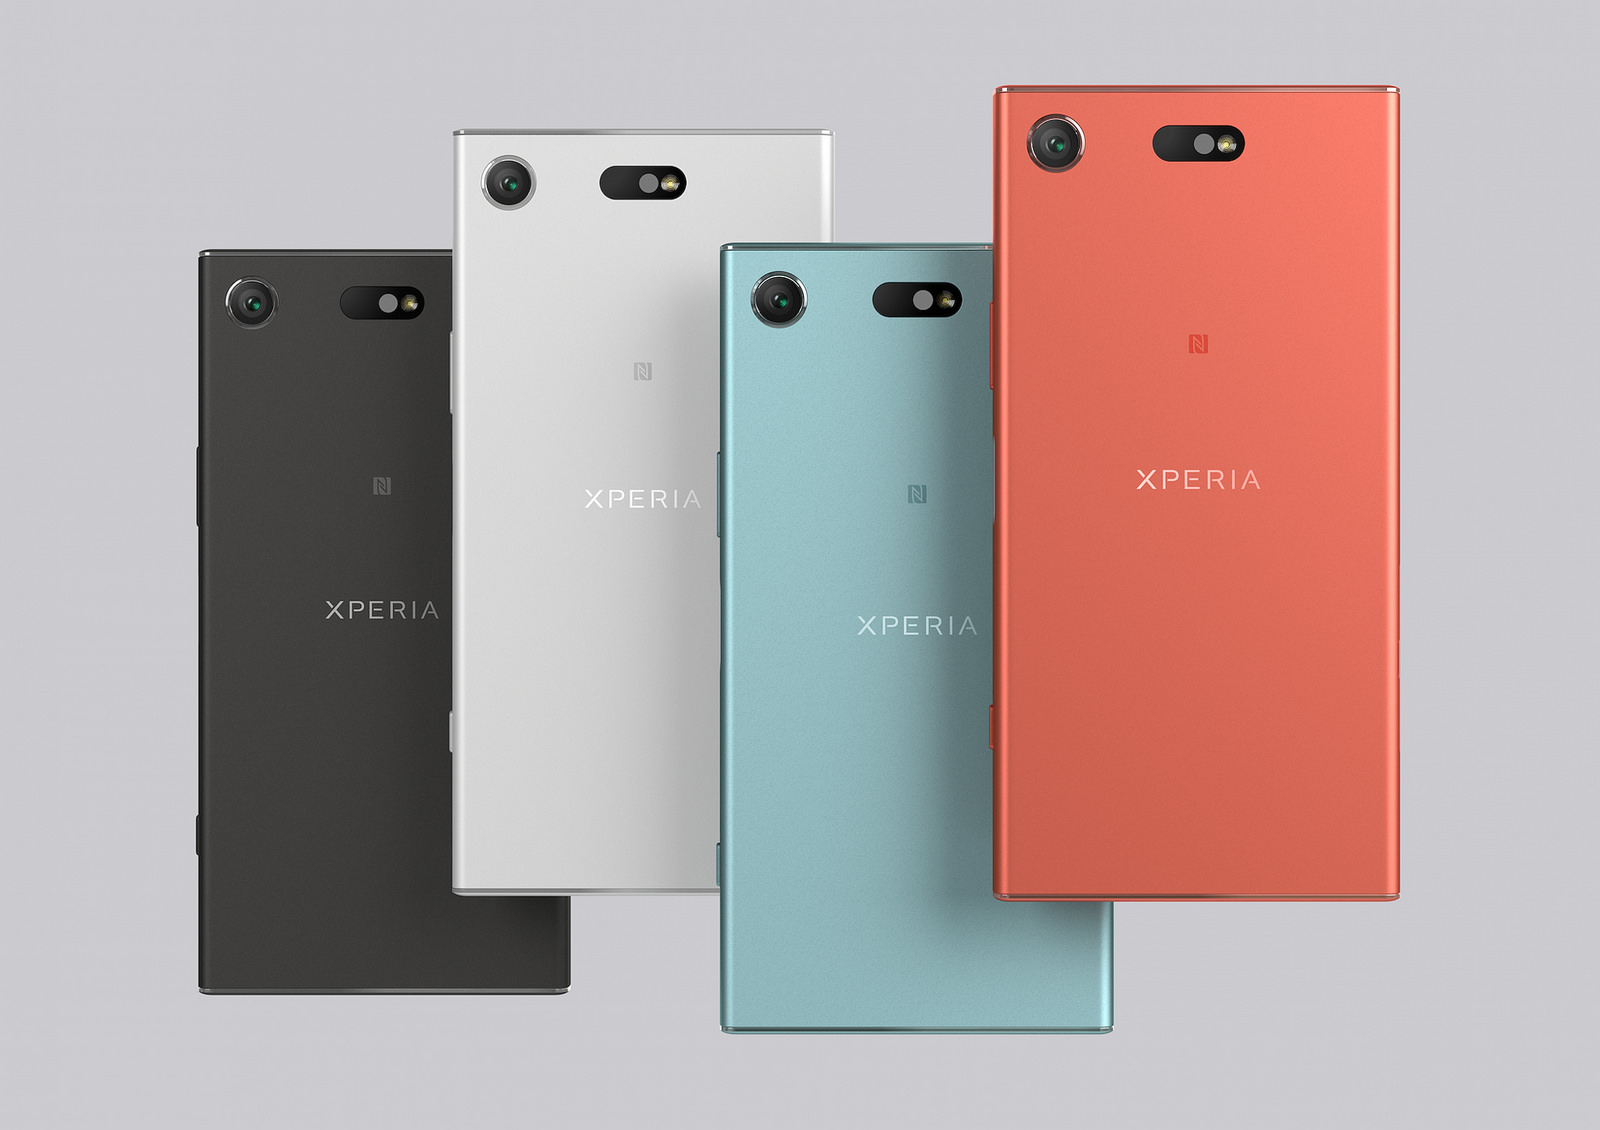 Sony - Android Authority